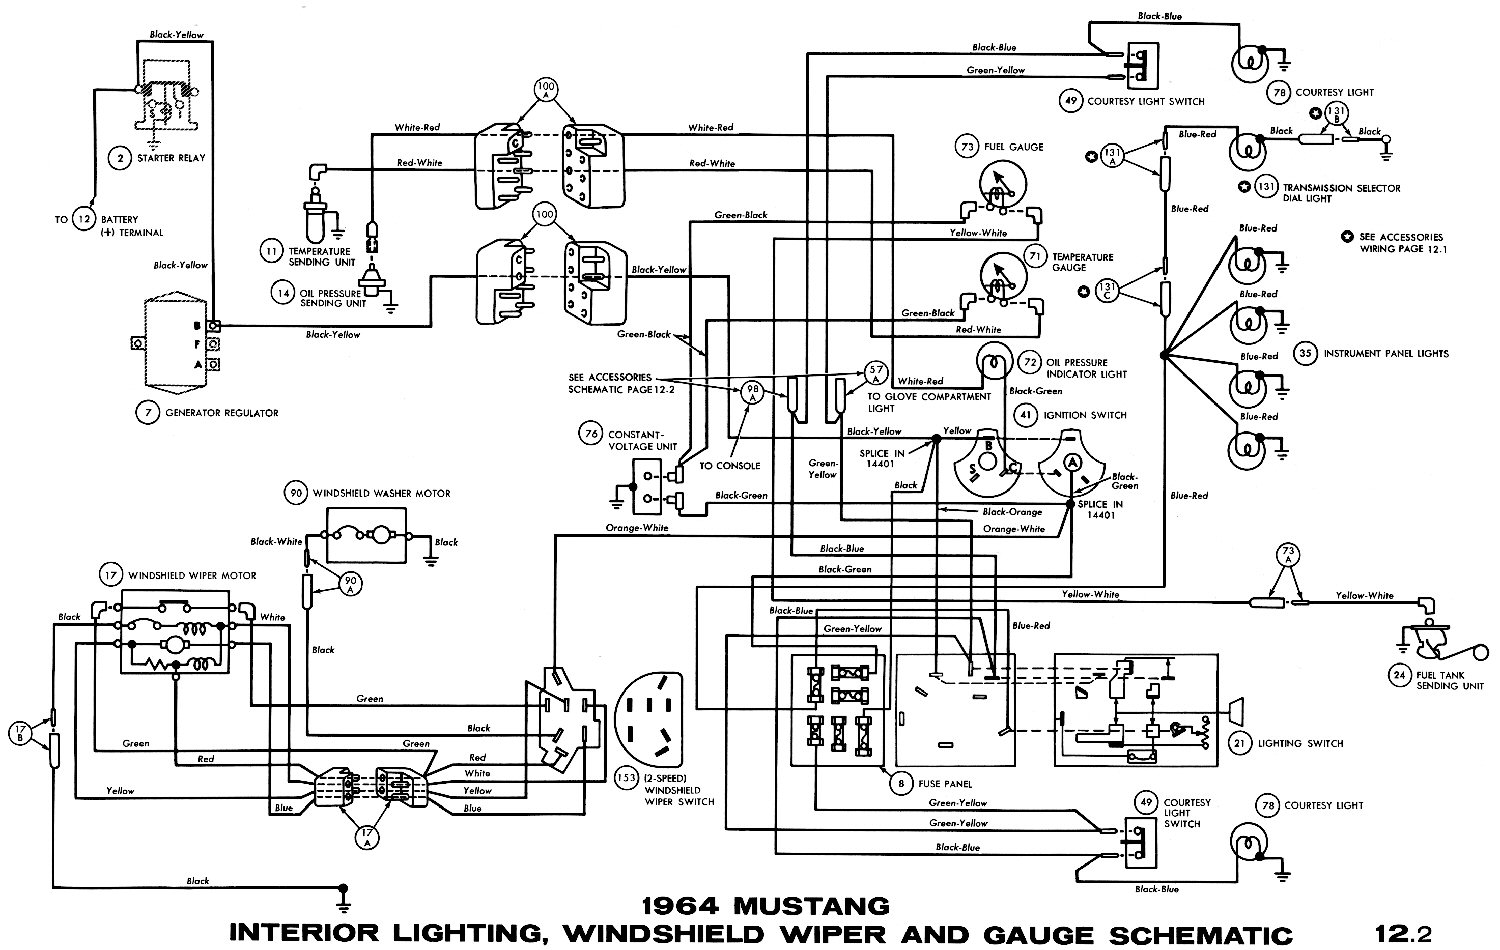 1964 Mustang Wiring Diagrams on 2012 Ford Mustang Gt Fuse Box